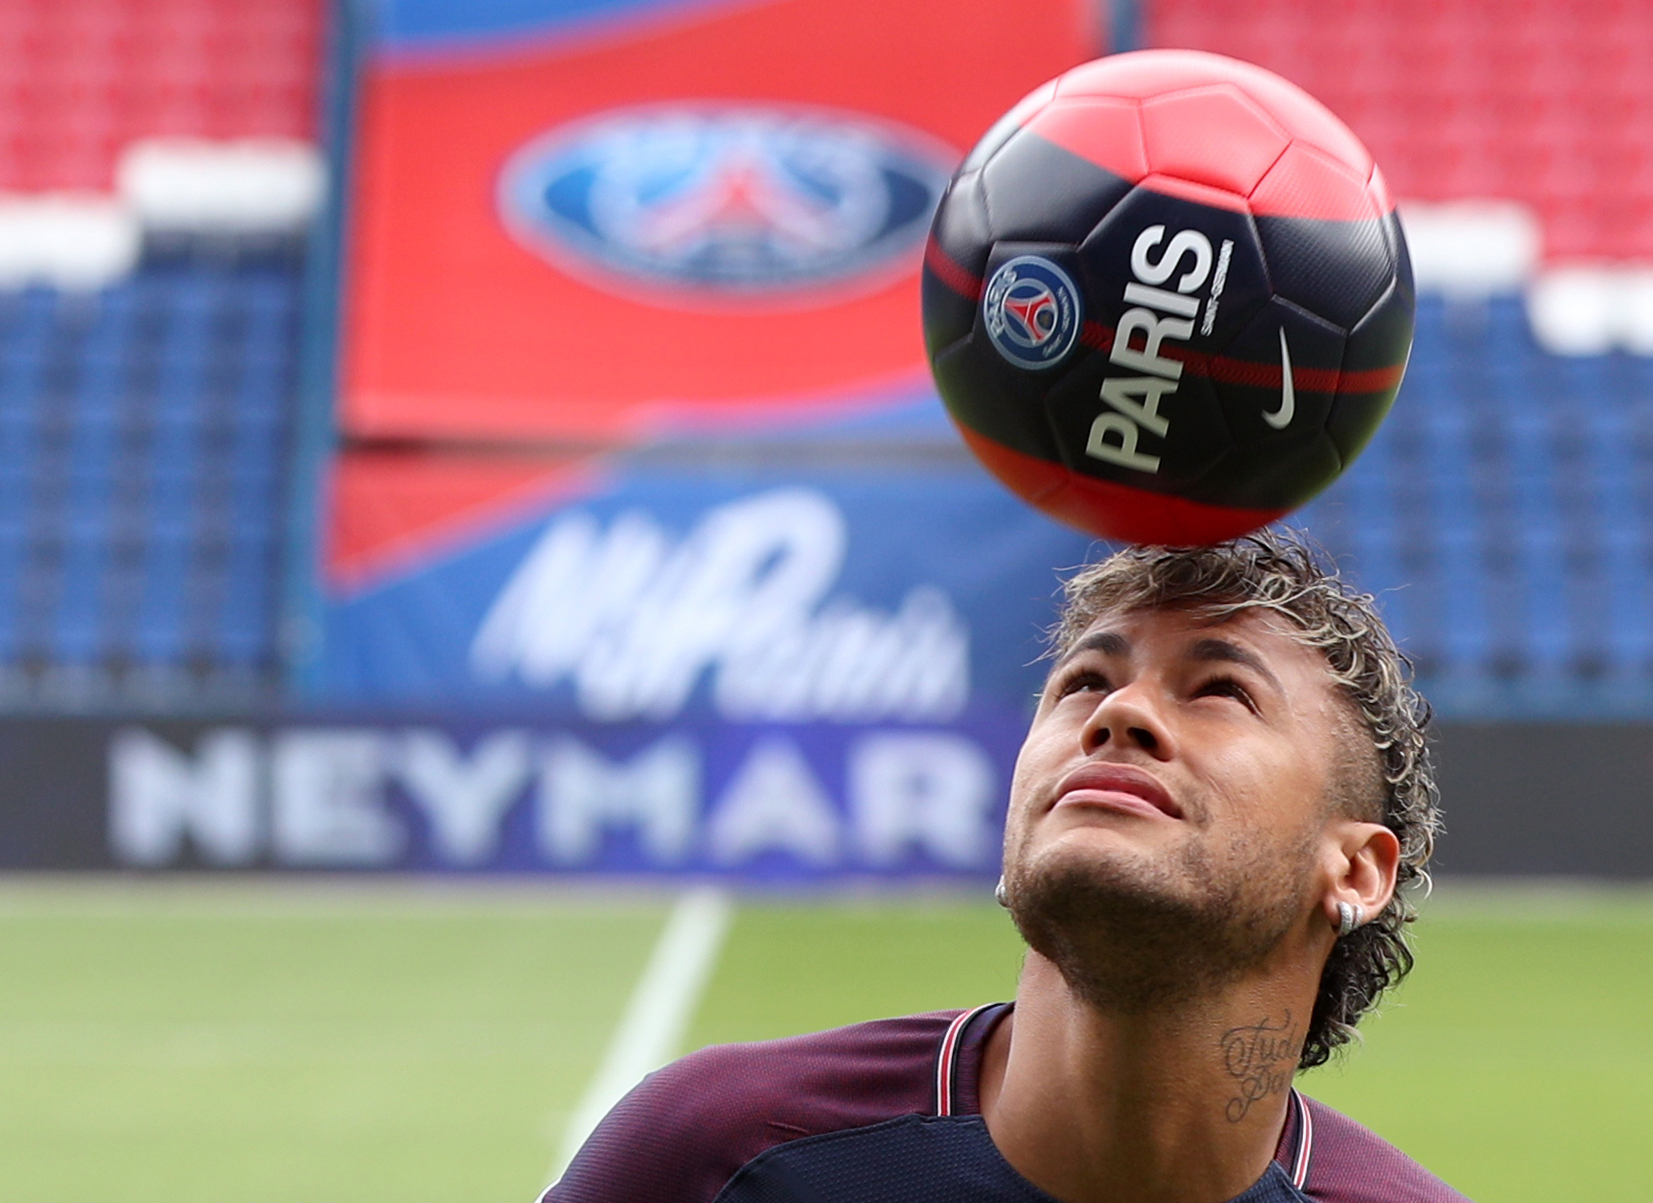 Neymar performs skills pitchside after a press conference at the Parc des Princes (PA)